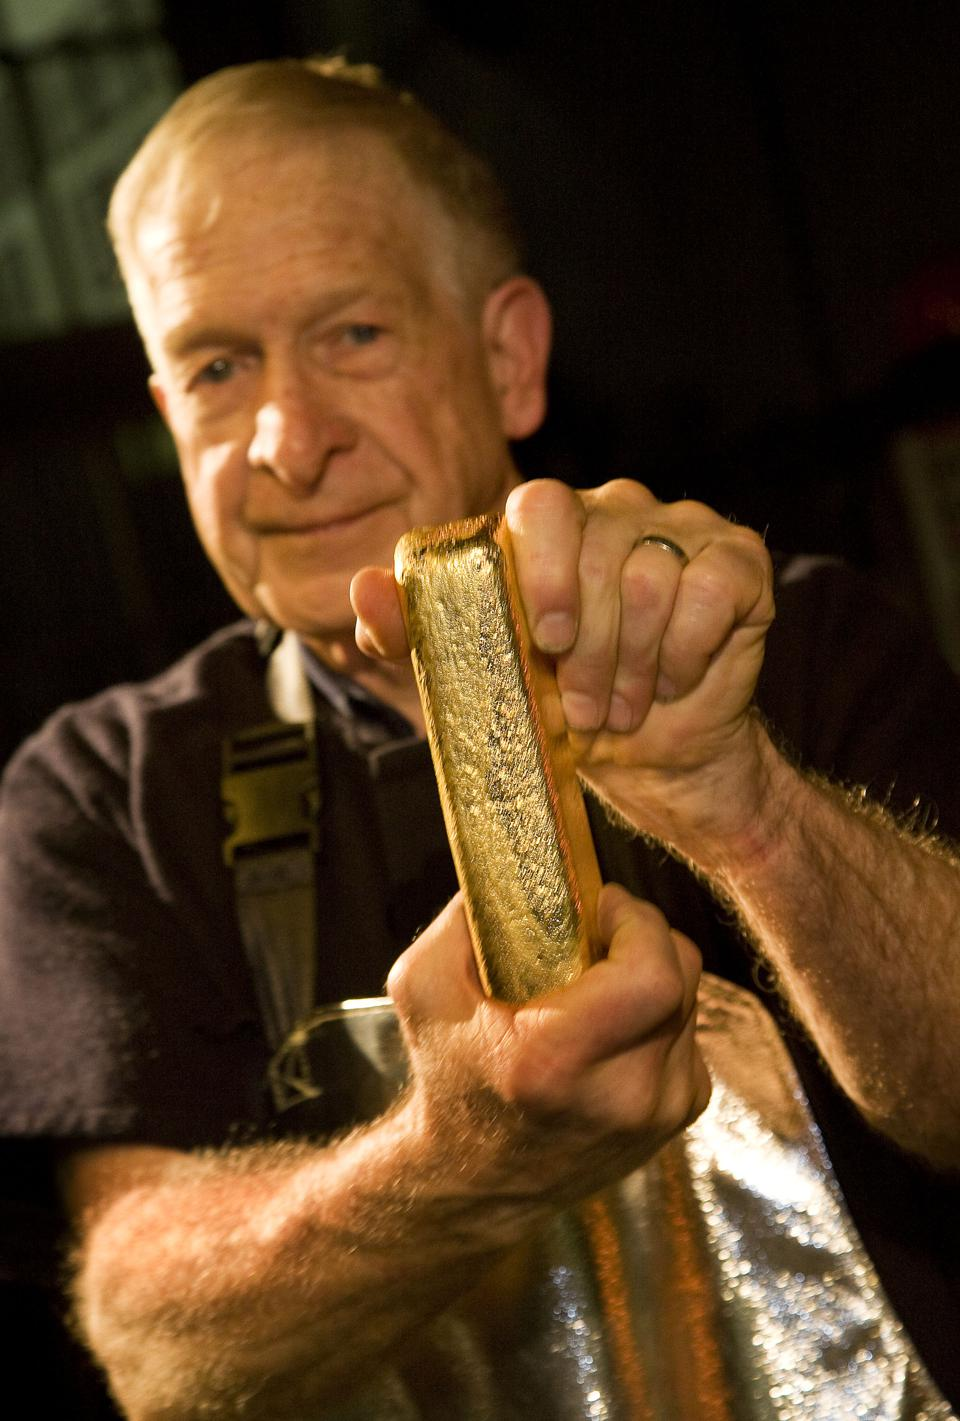 Freshly poured Gold Bar at the Perth Mint